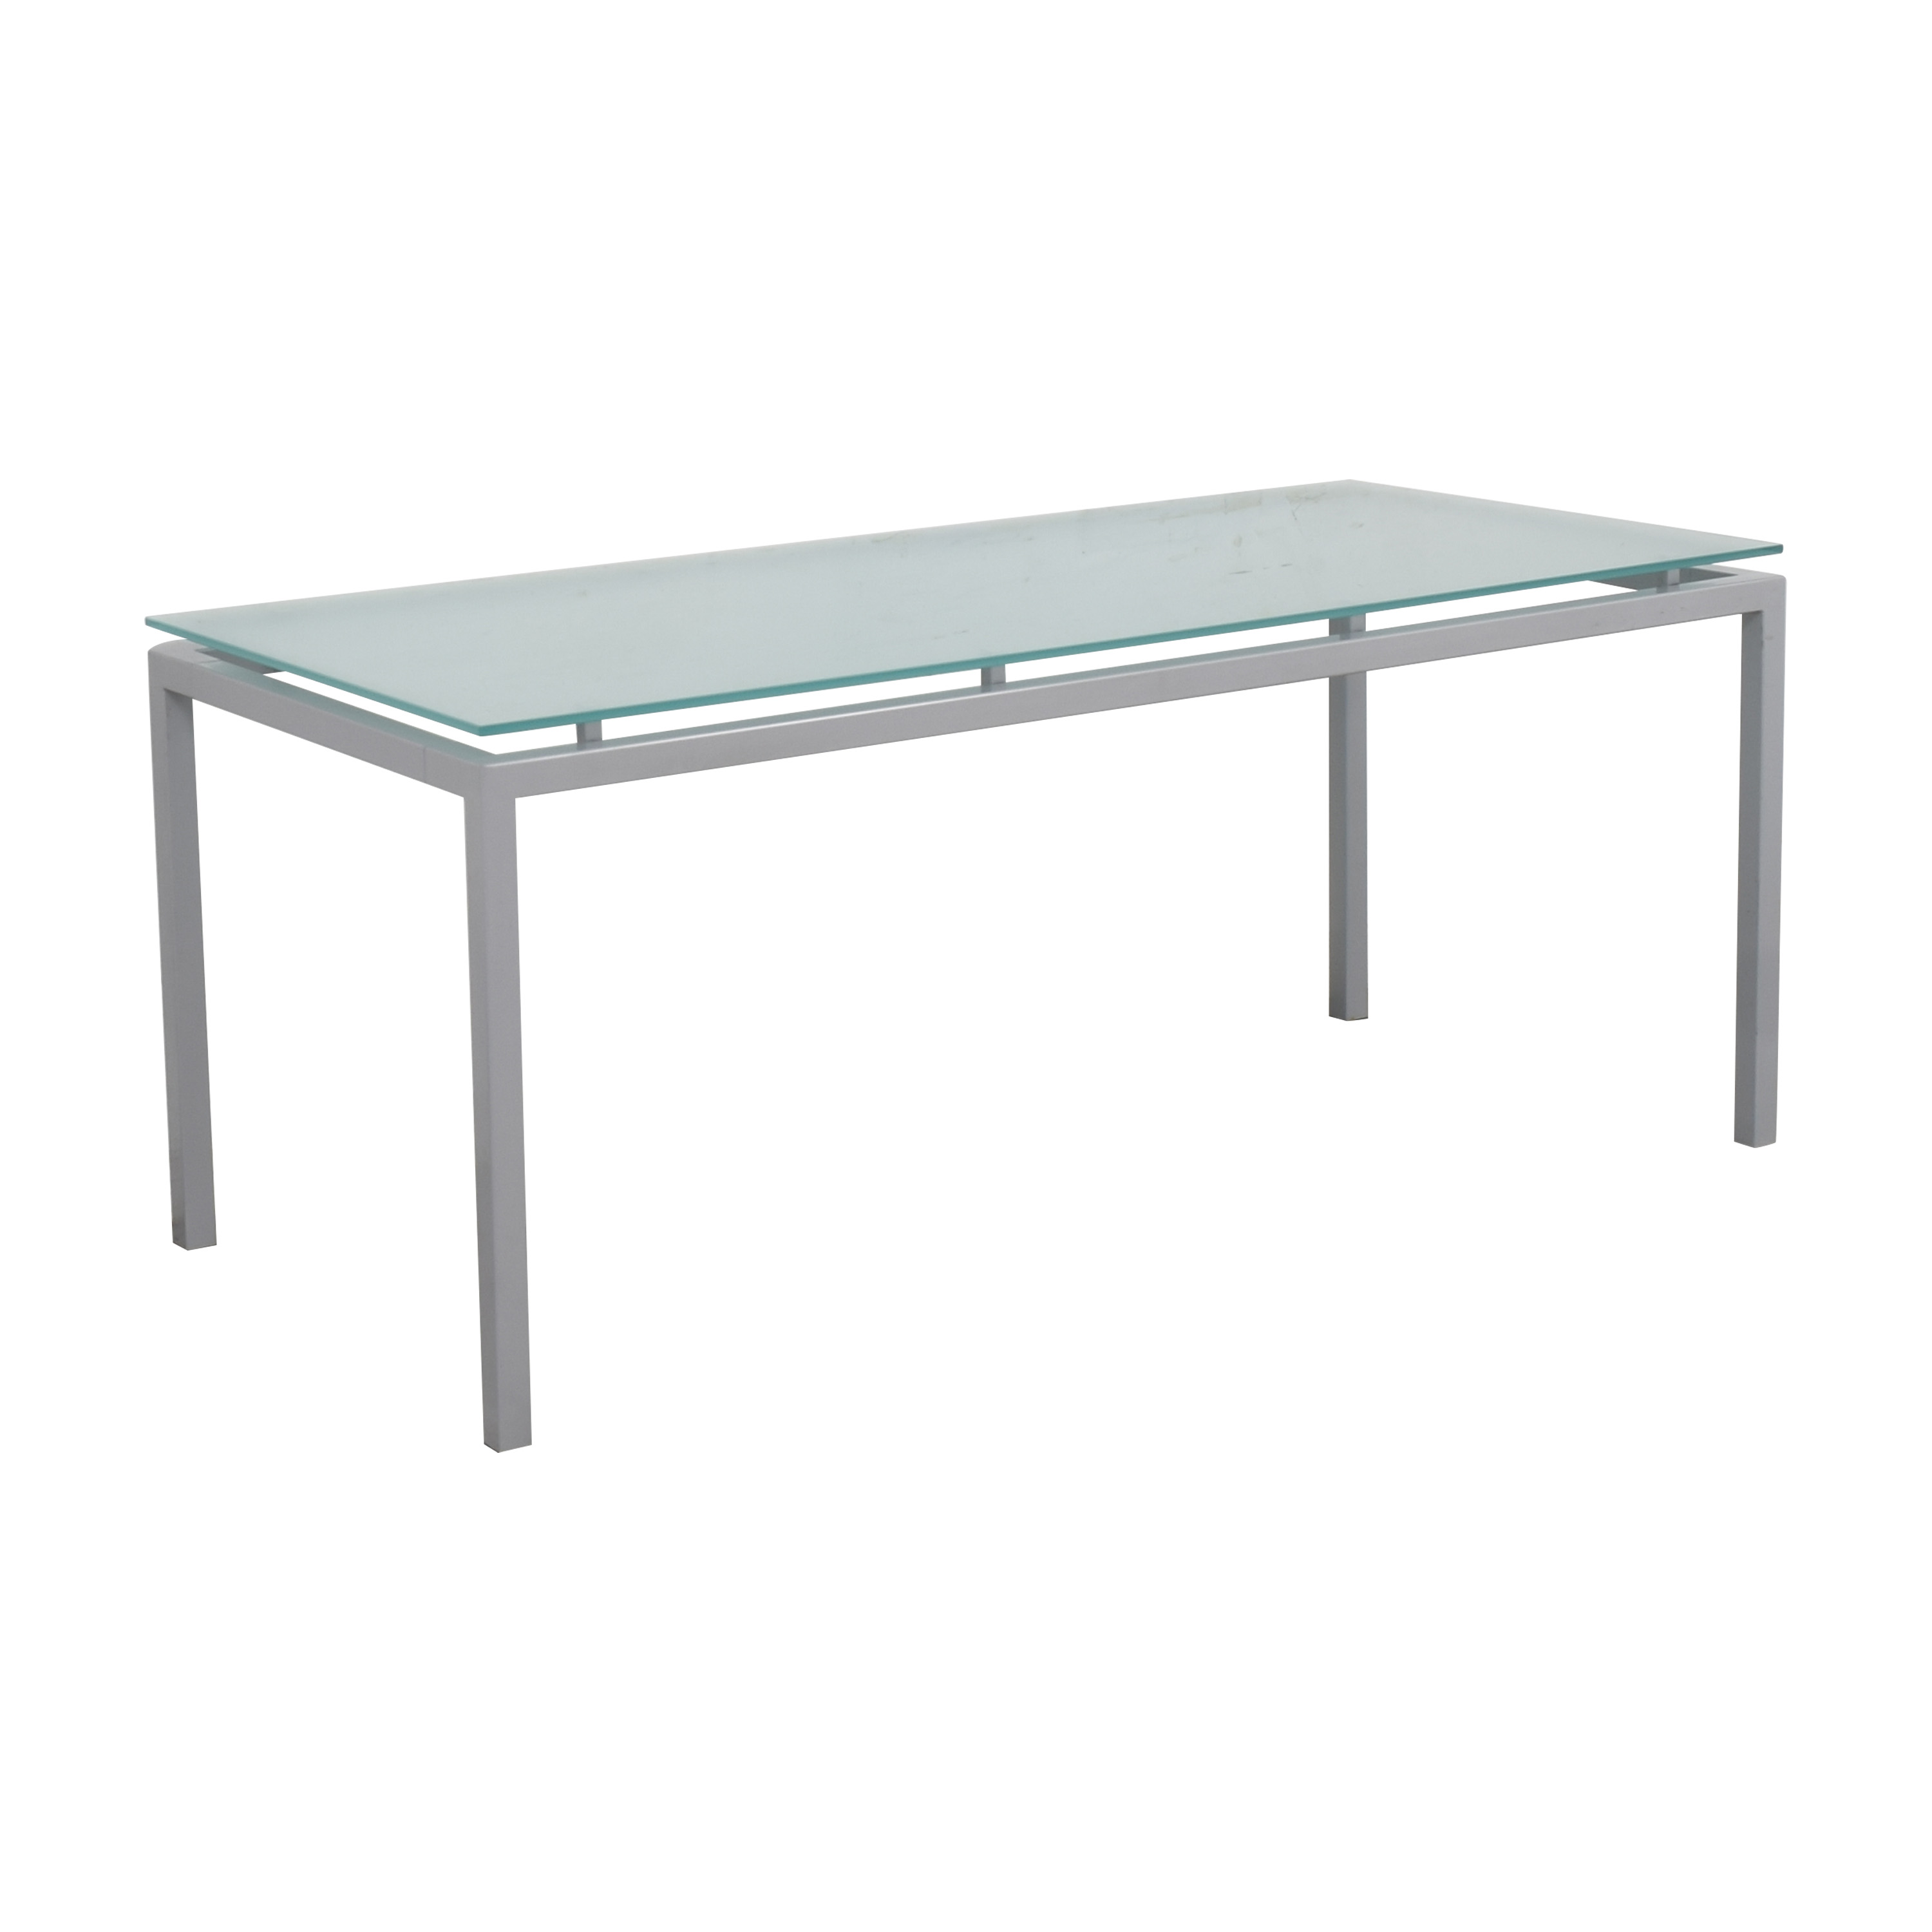 shop Room & Board Room & Board Dining Table with Floating Frosted Surface online